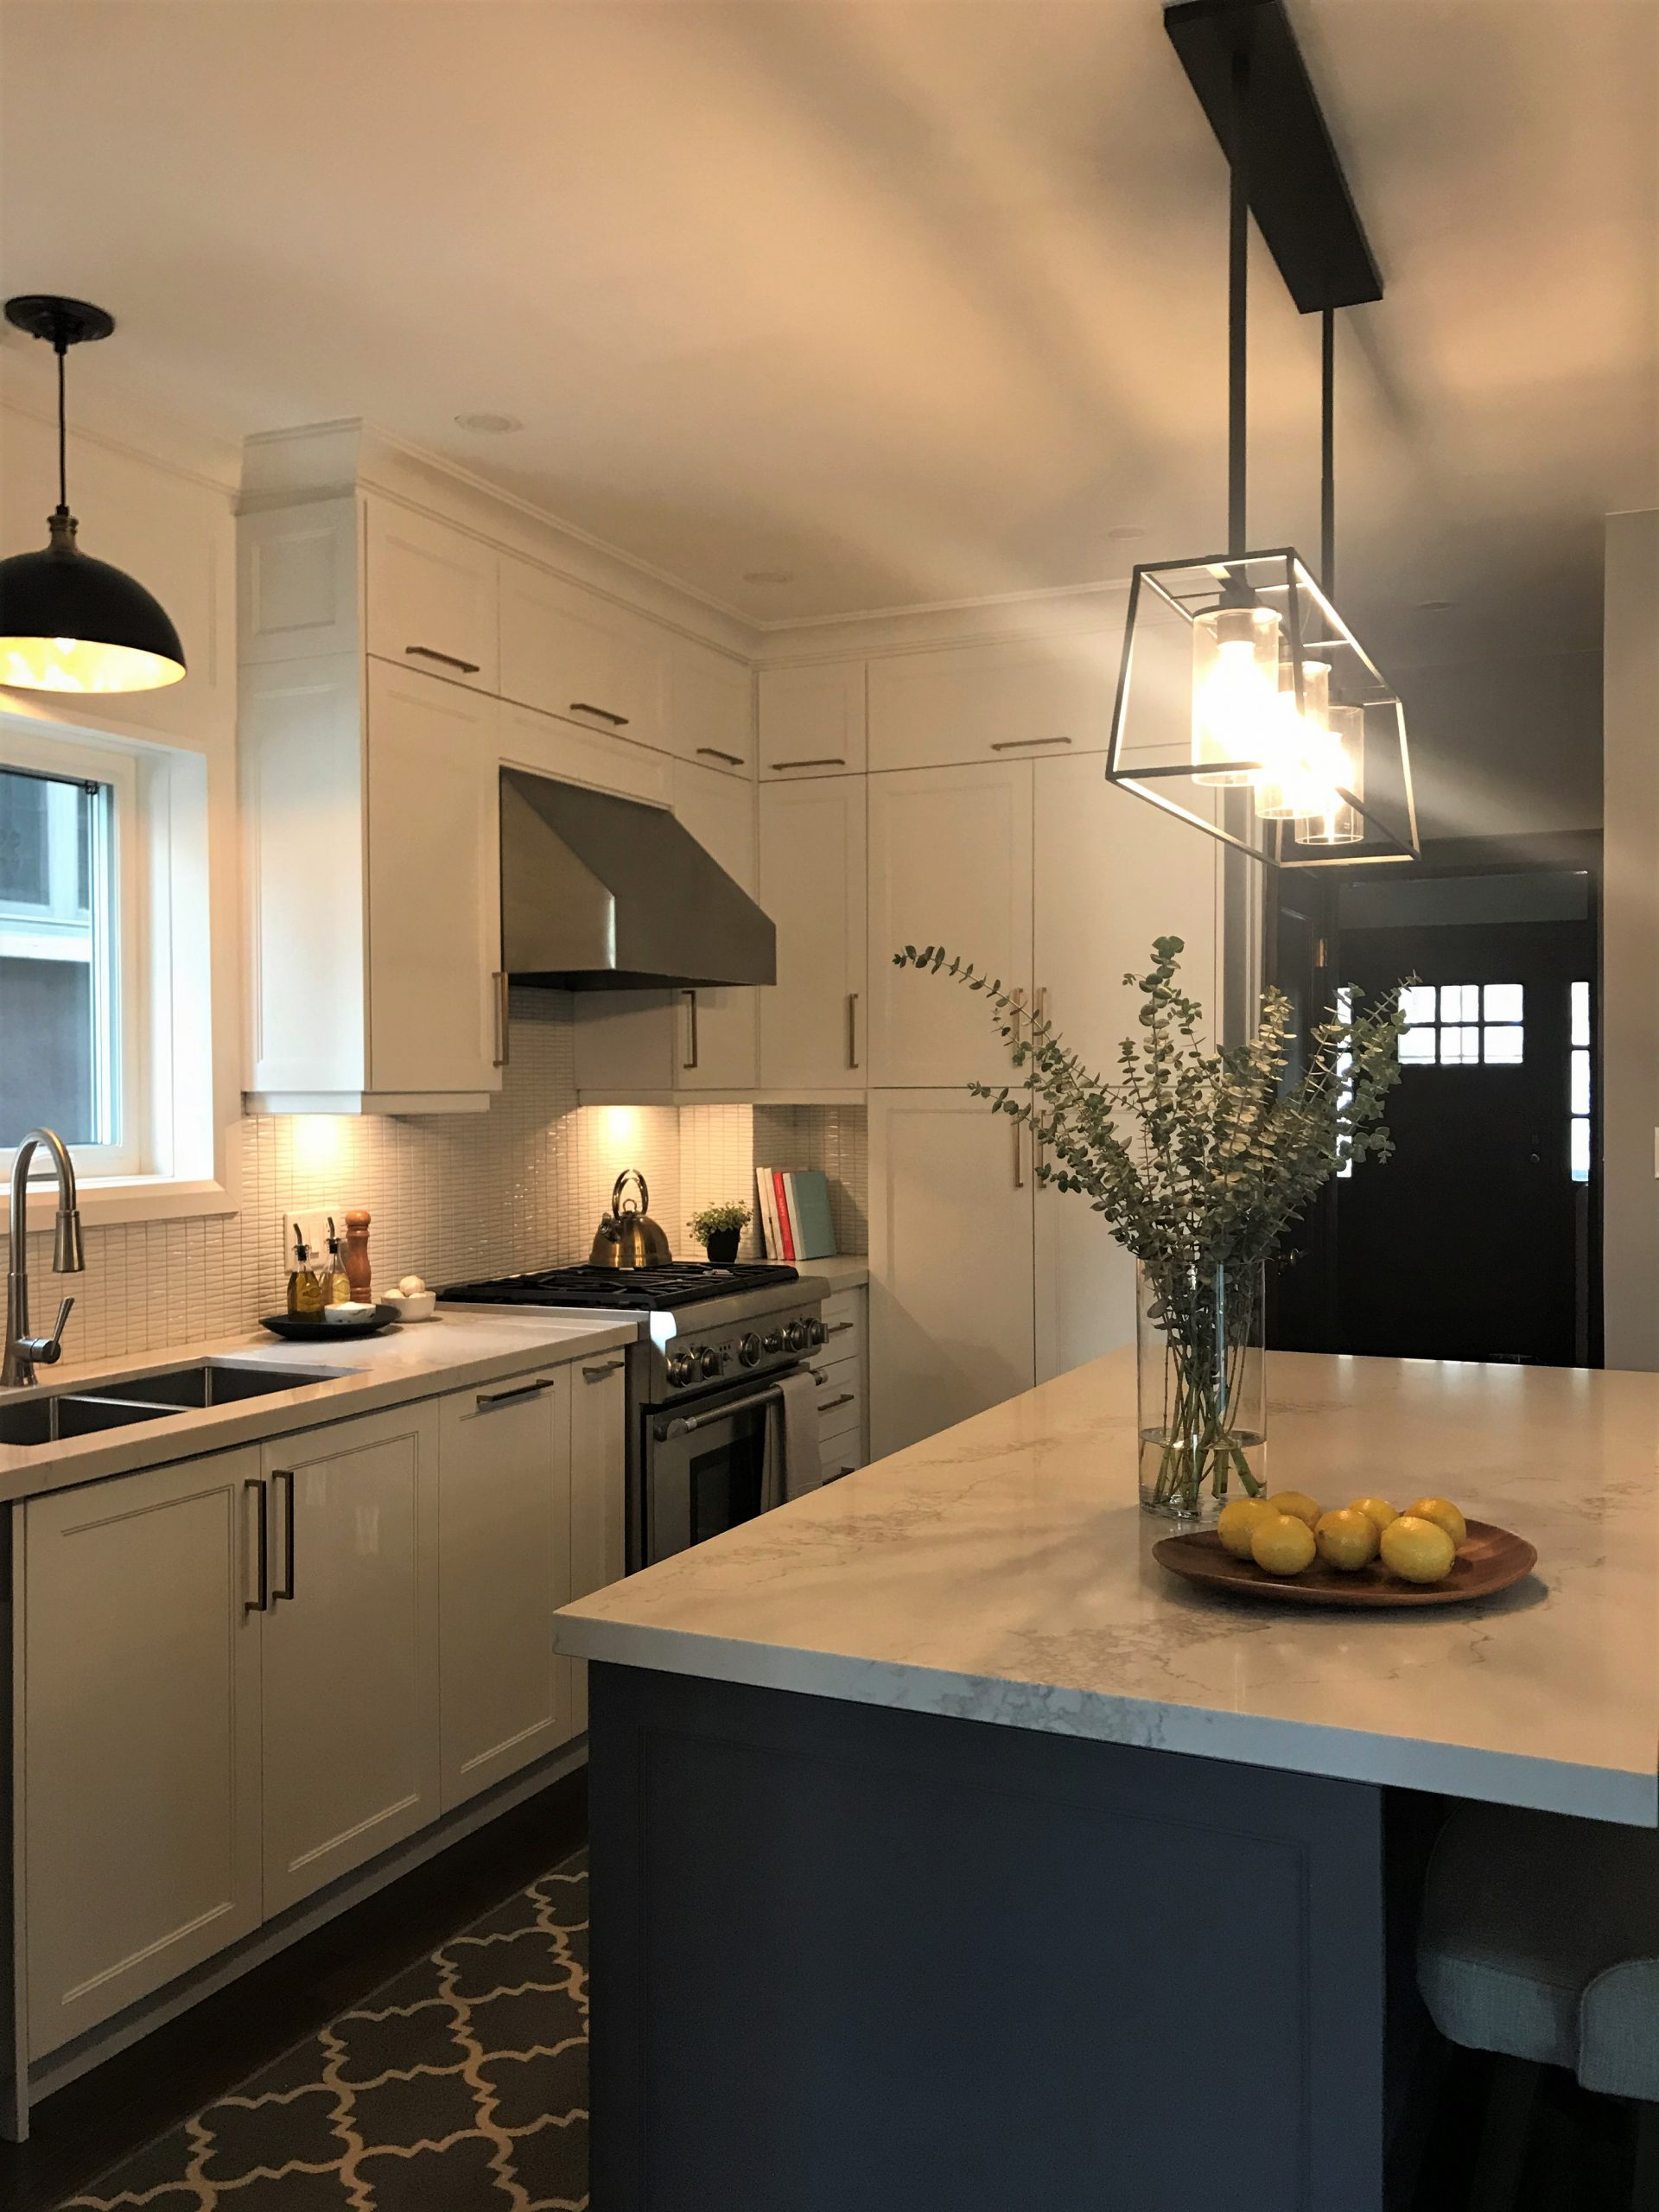 Home Front Redesigns Kennedy Avenue Project Kitchen Photo3